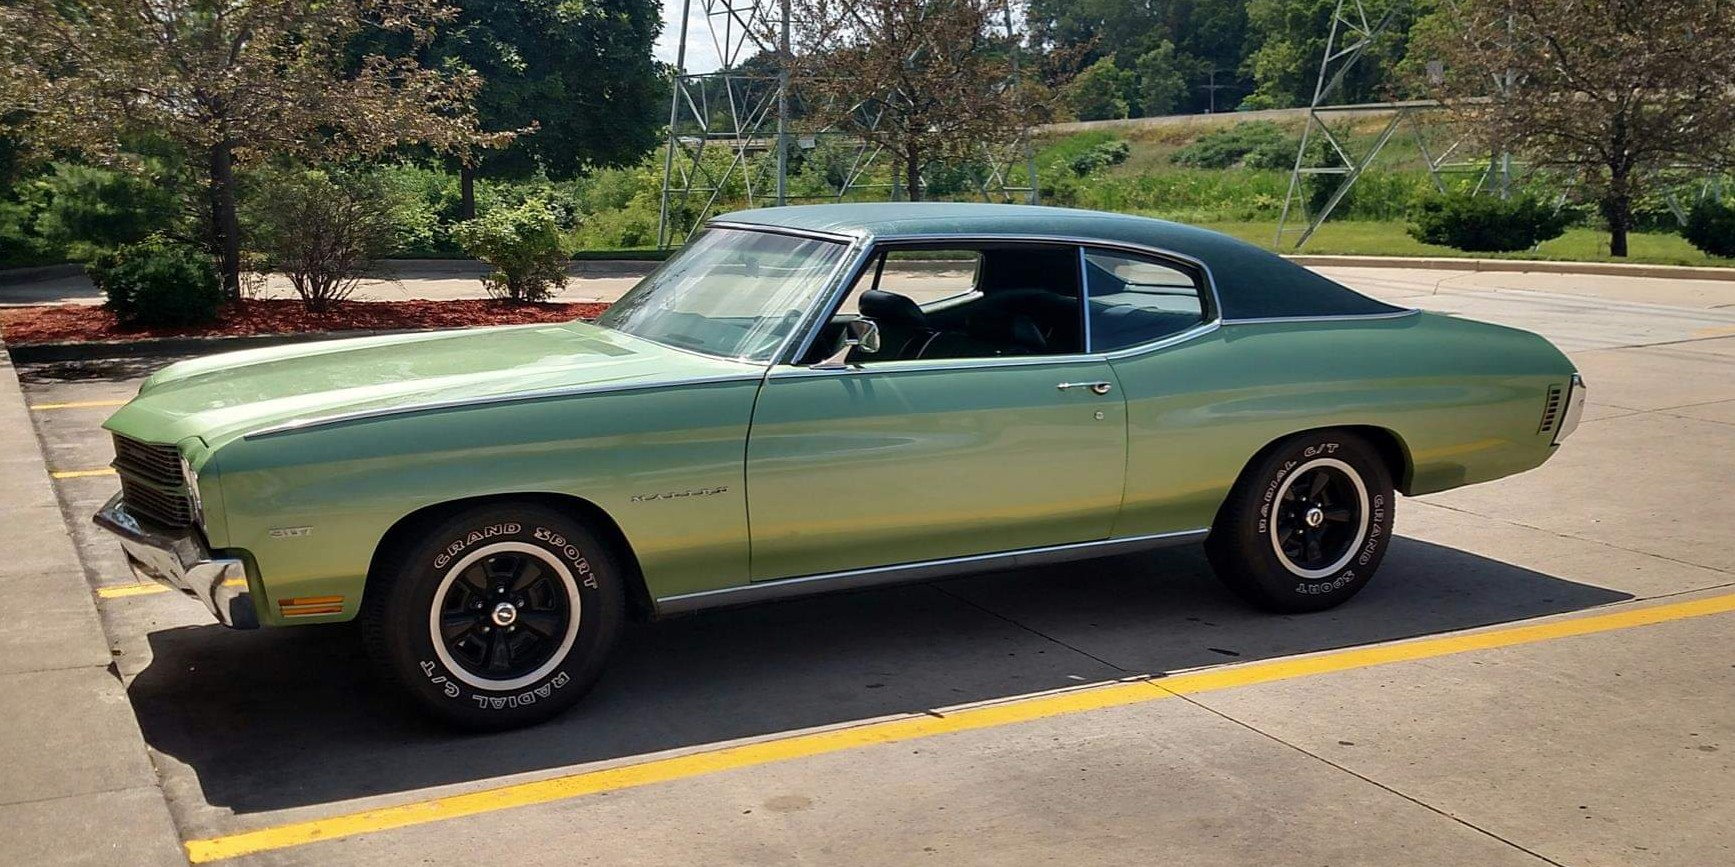 Drive-Thru Interview:  Juli Williams' 1970 Chevelle